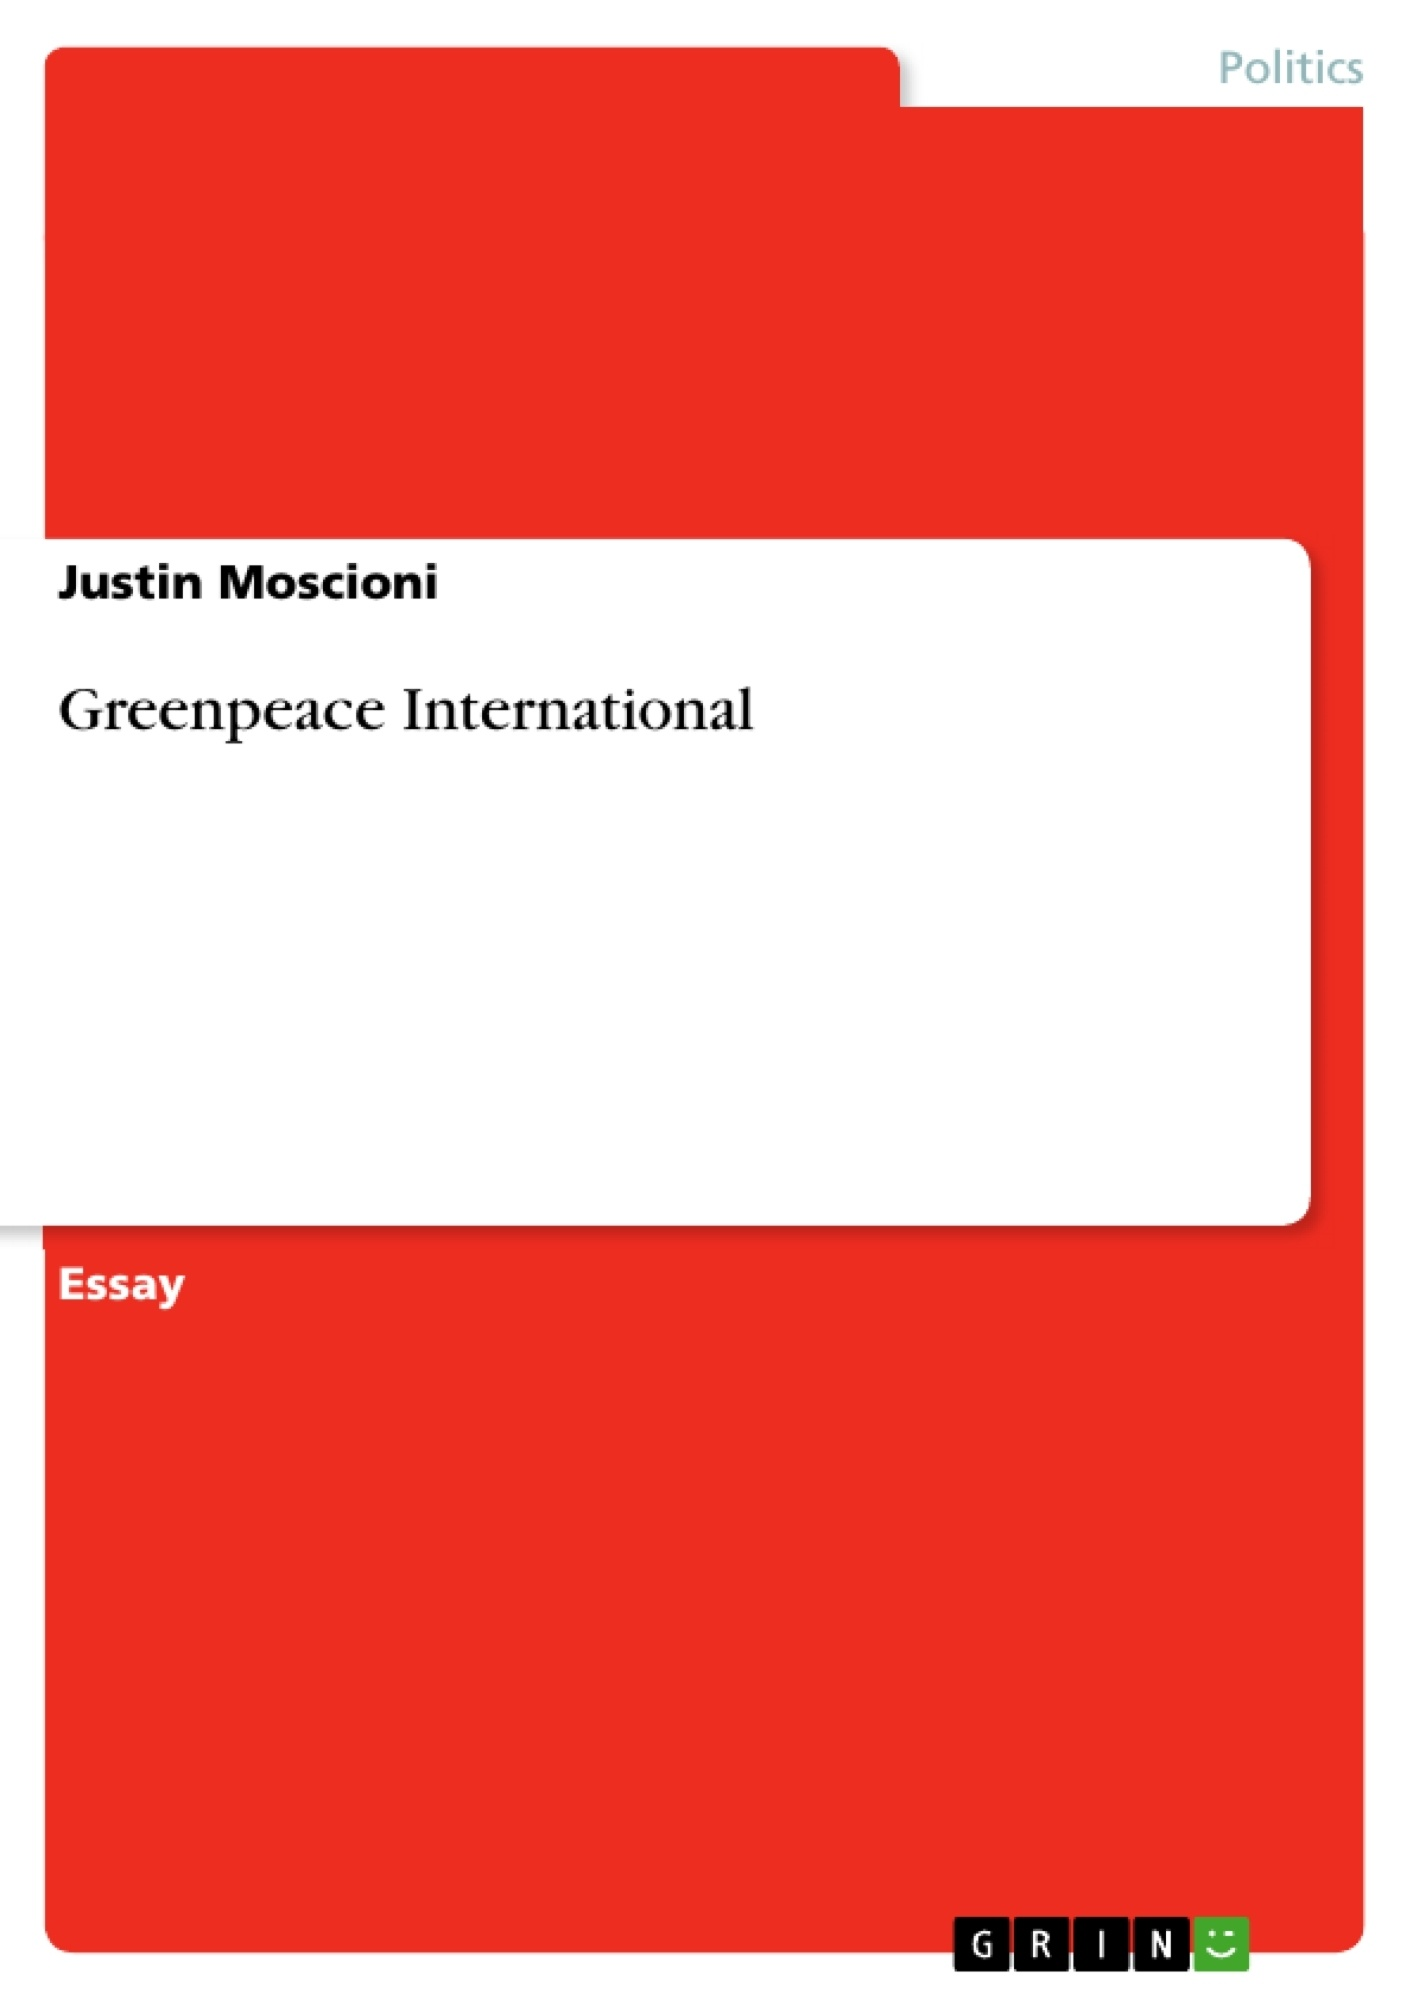 Title: Greenpeace International